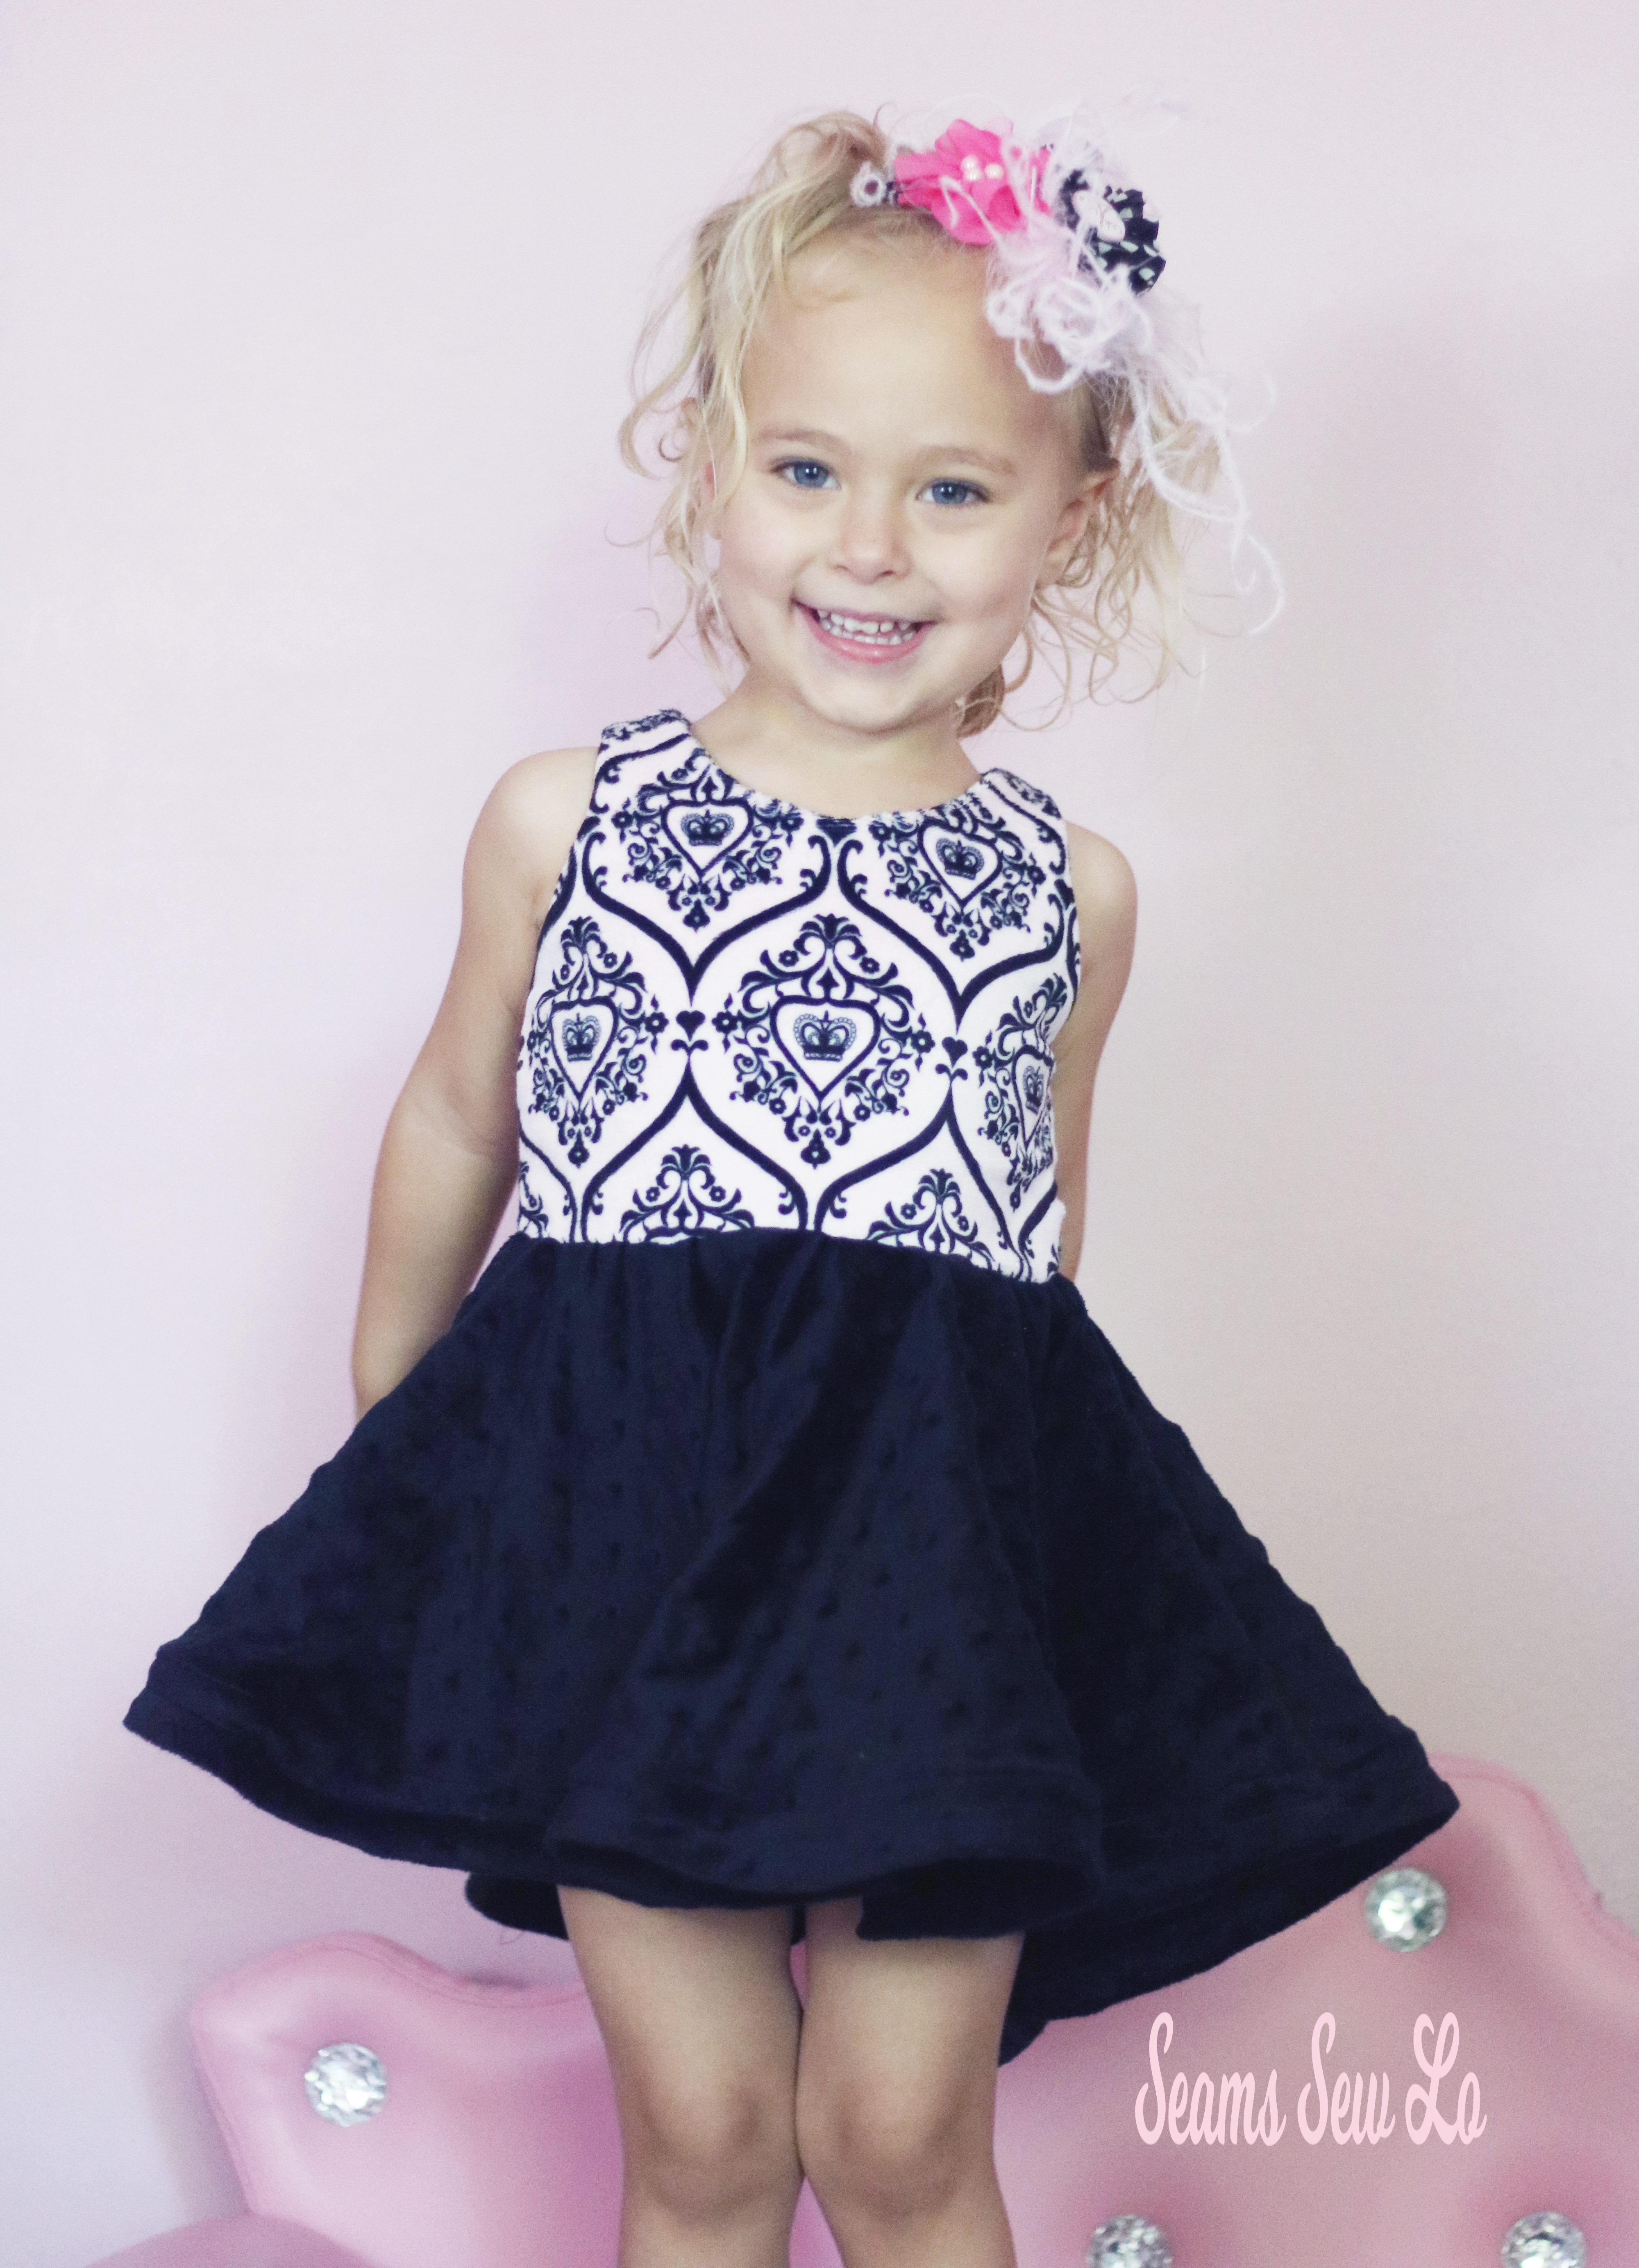 Be Amazing Girls Party Dress Sewing Pattern by Ellie and Mac $1 Sewing Pattern